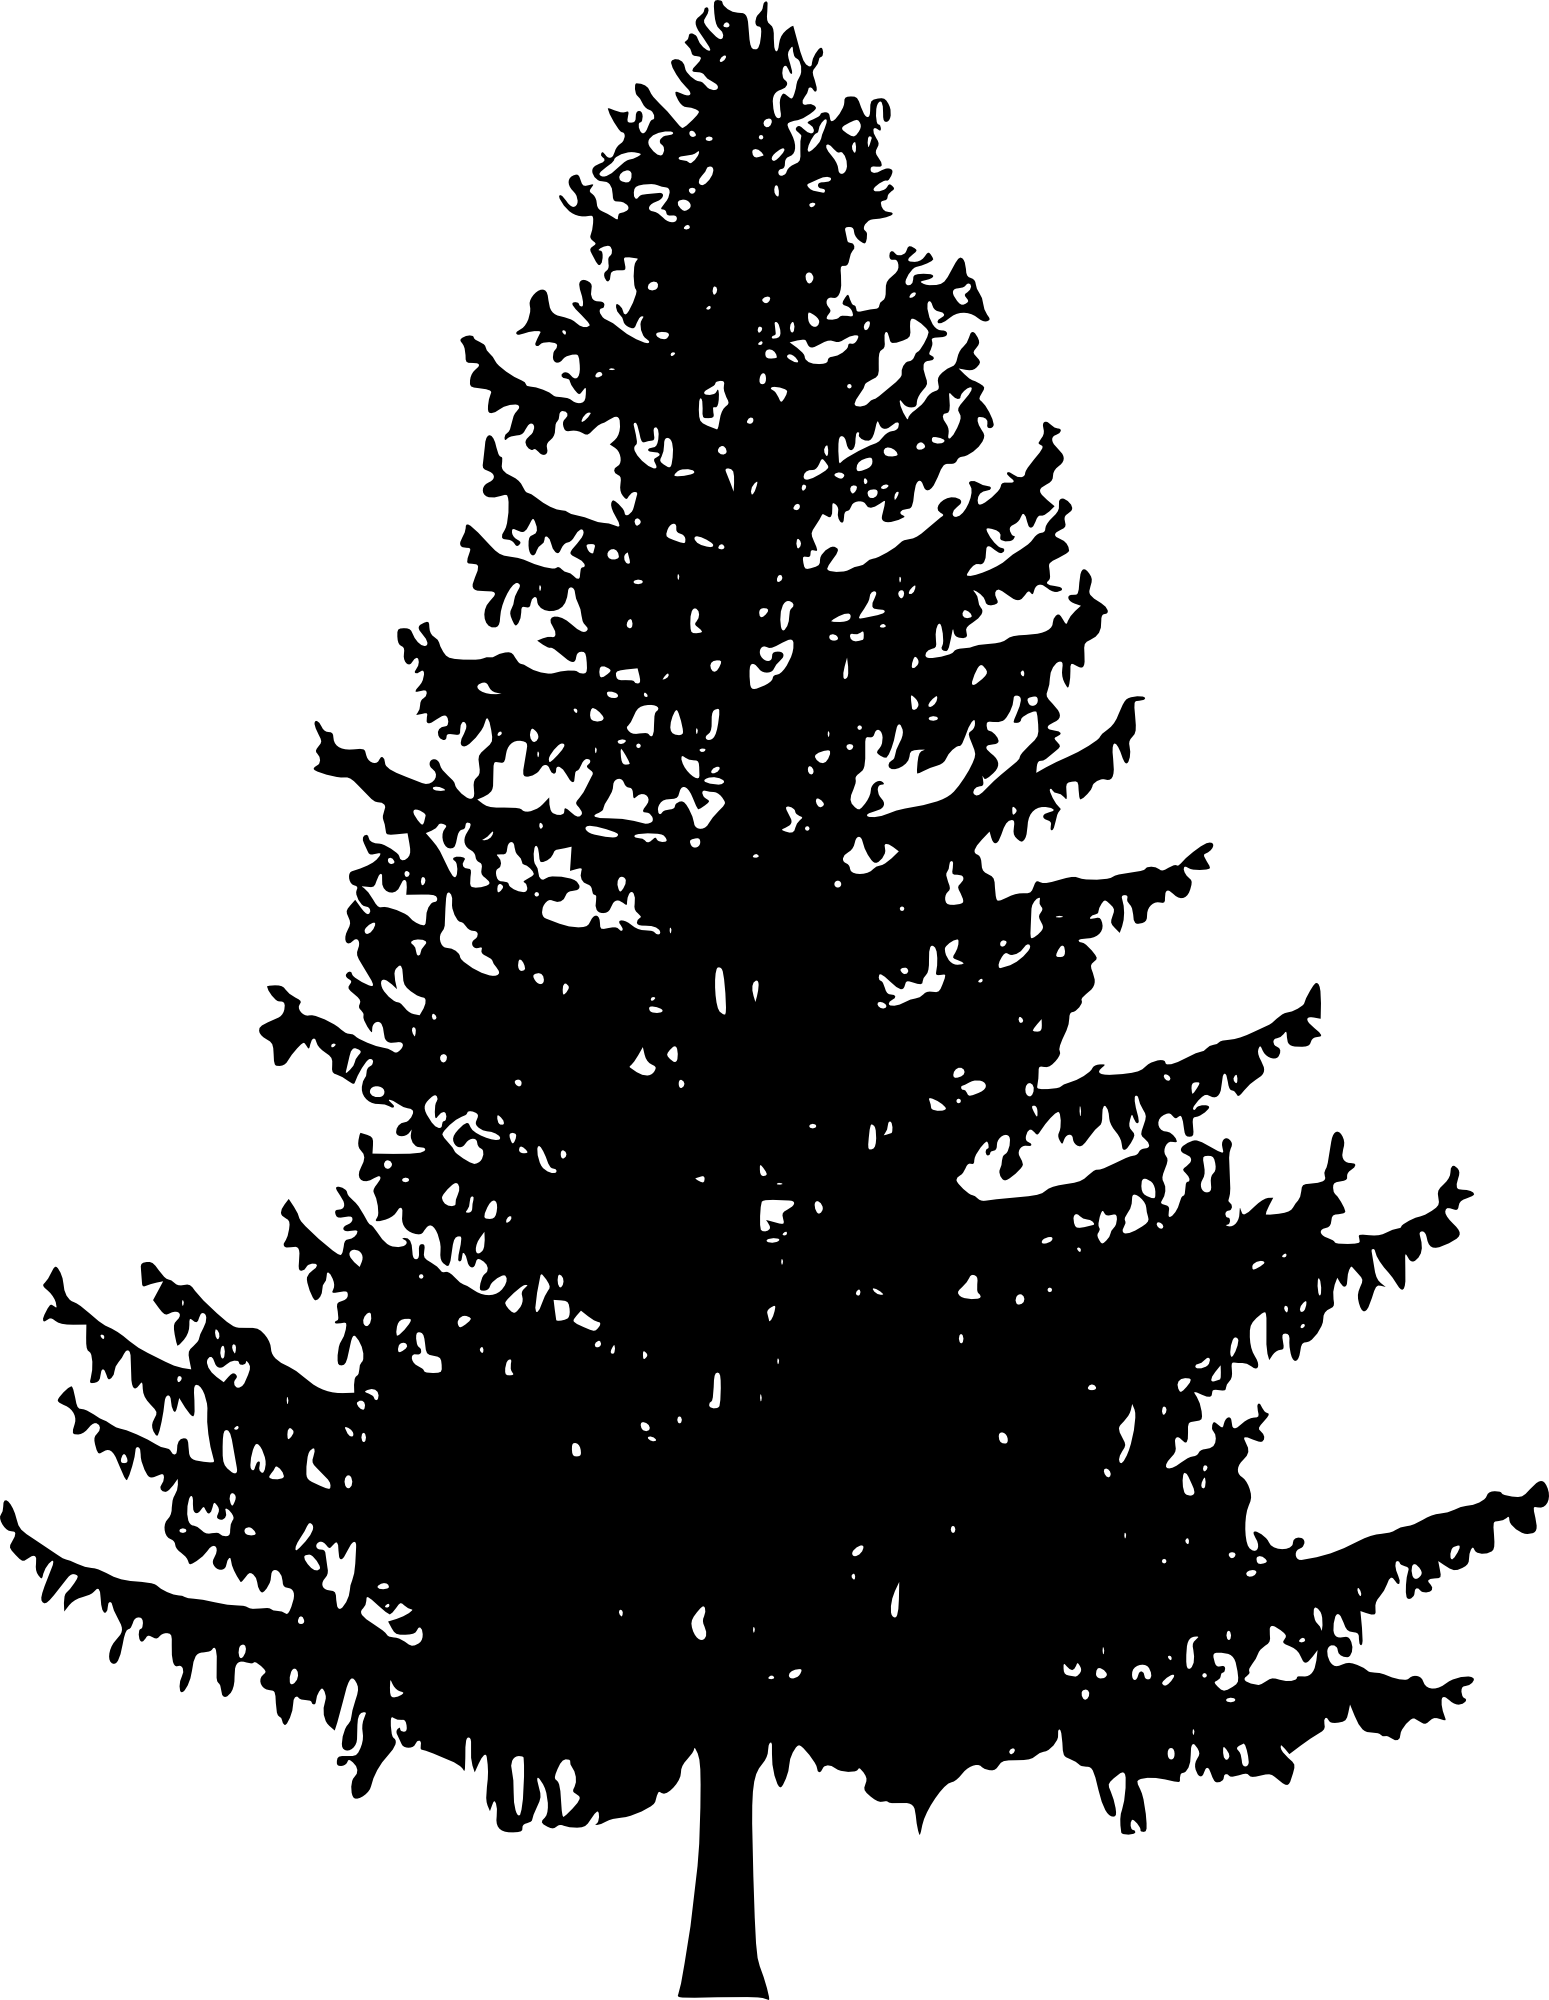 Black pine png. Tree silhouette transparent